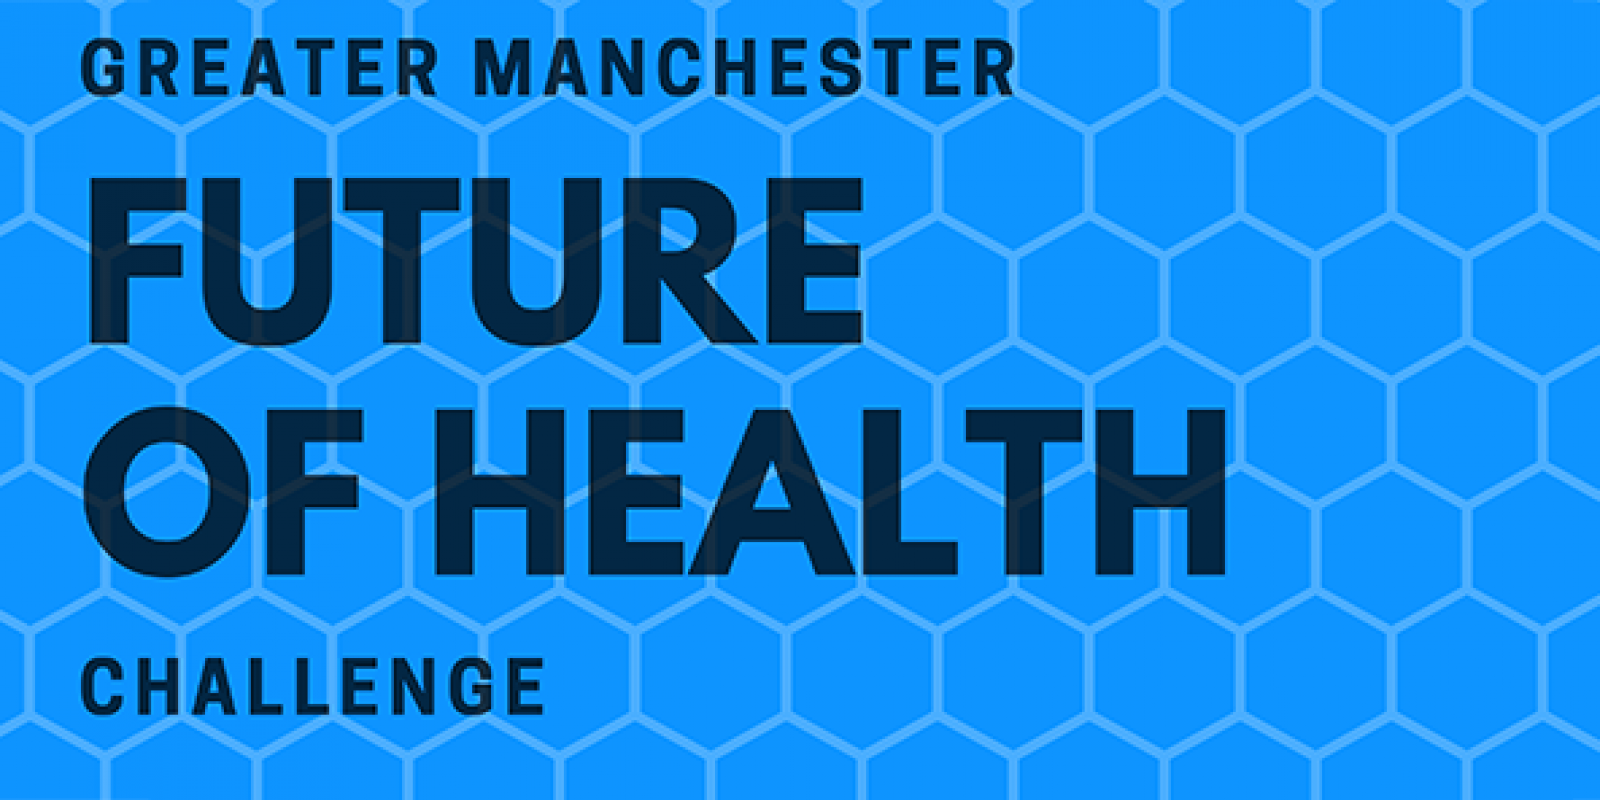 Greater Manchester Future of Health